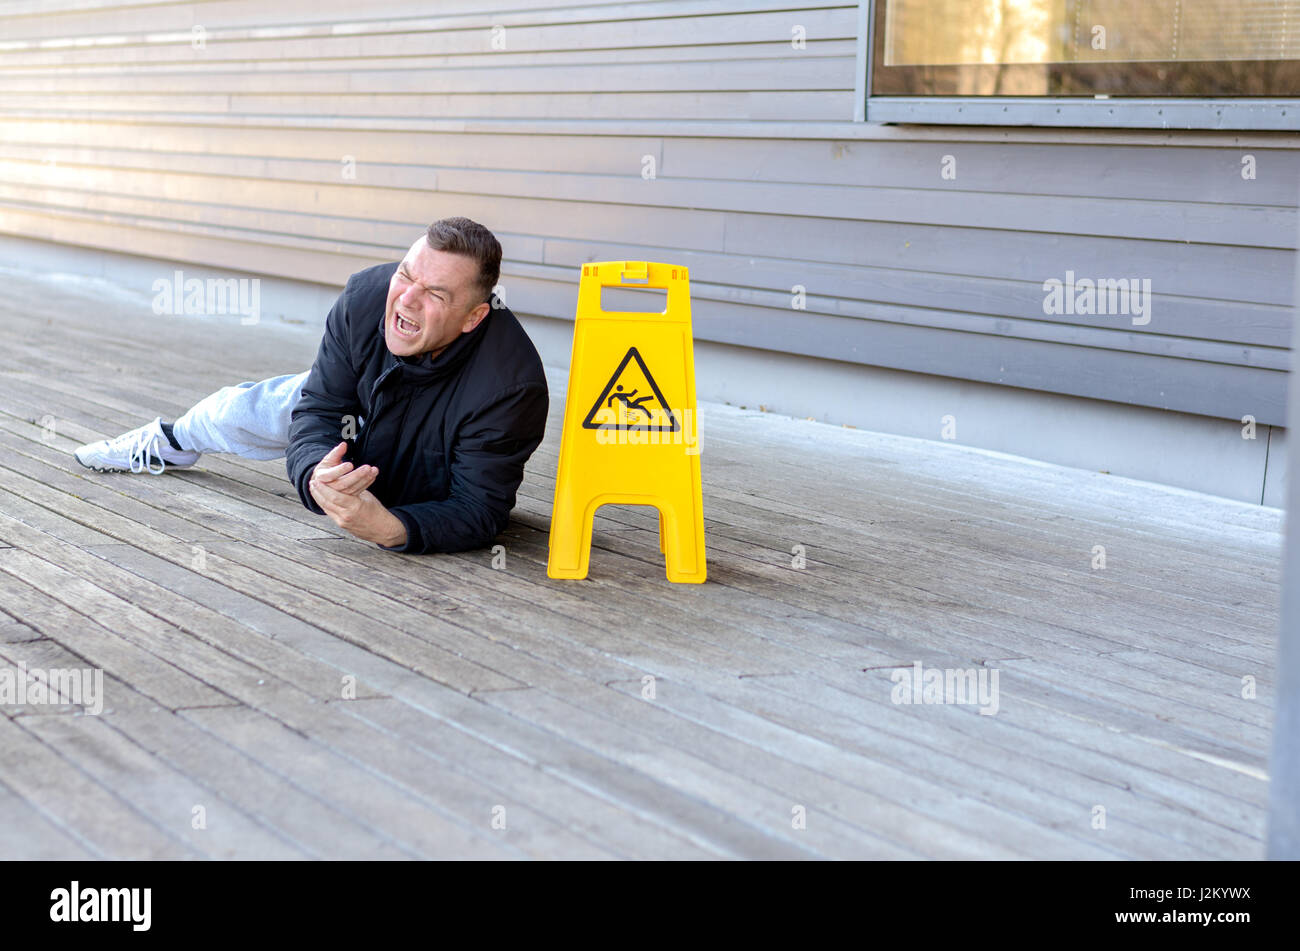 Middle-aged man taken a fall on a slippery floor right alongside a portable yellow warning sign grimacing in pain - Stock Image